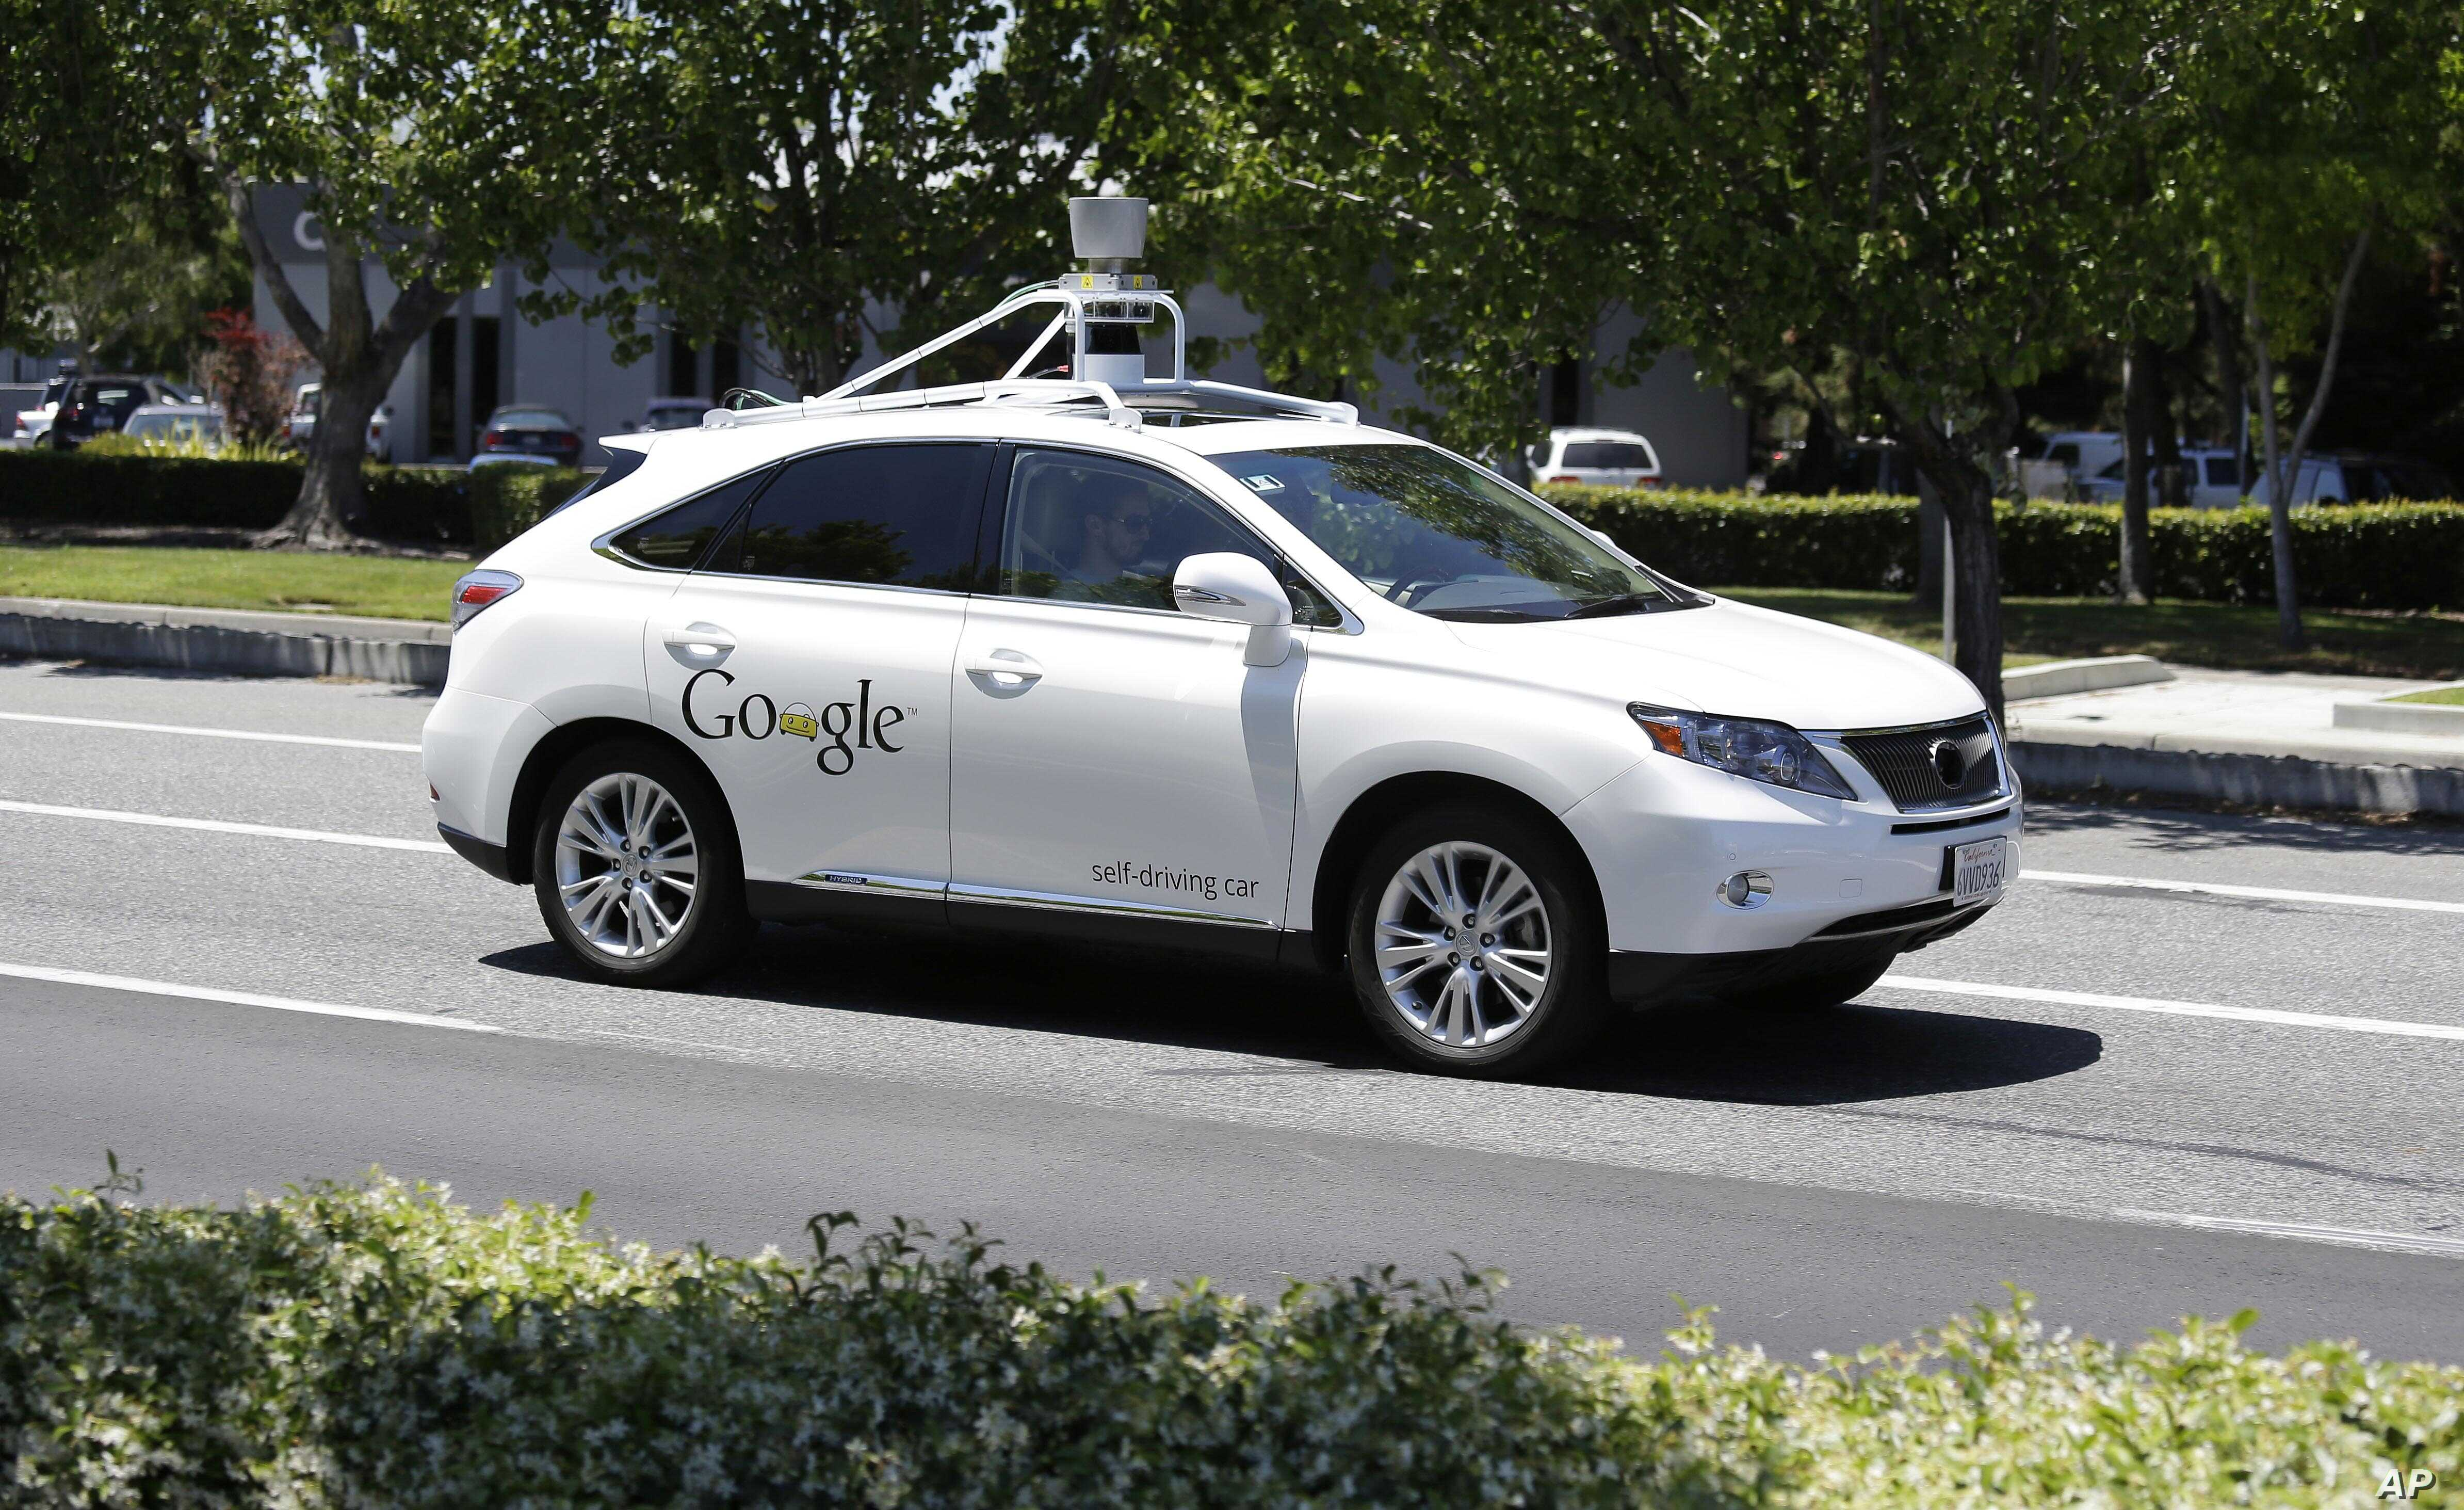 No Ticket, No Driver: Police Stop Google Self-driving Car   Voice of